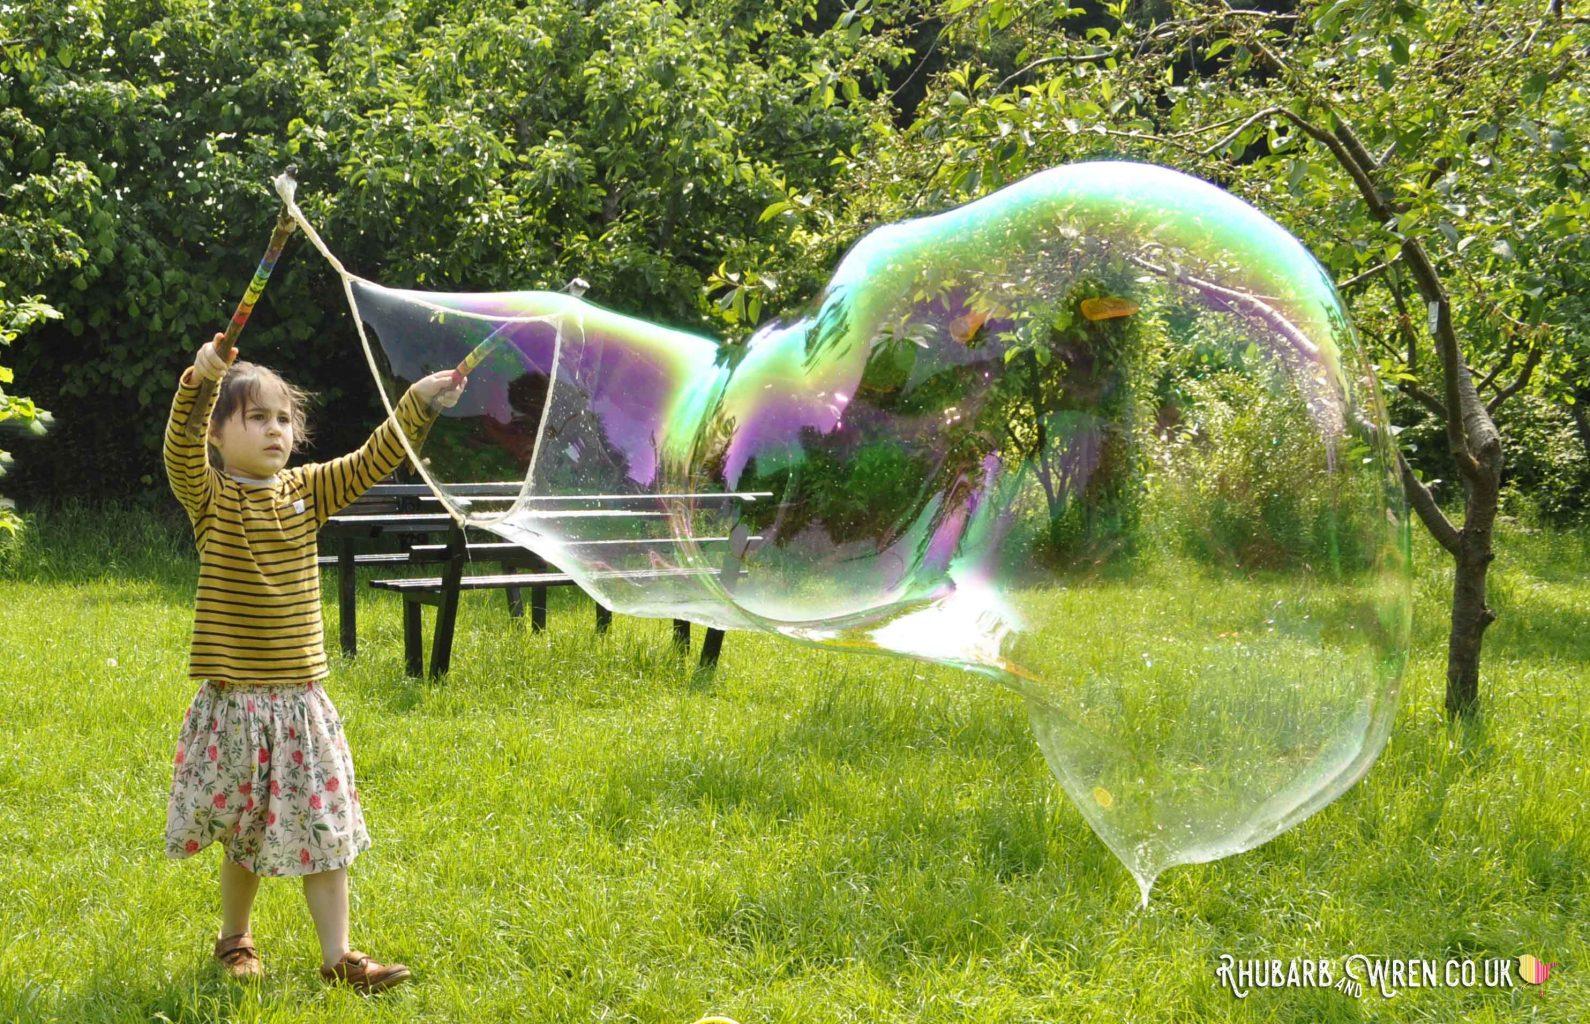 Child making giant bubbles with a diy giant bubble wand